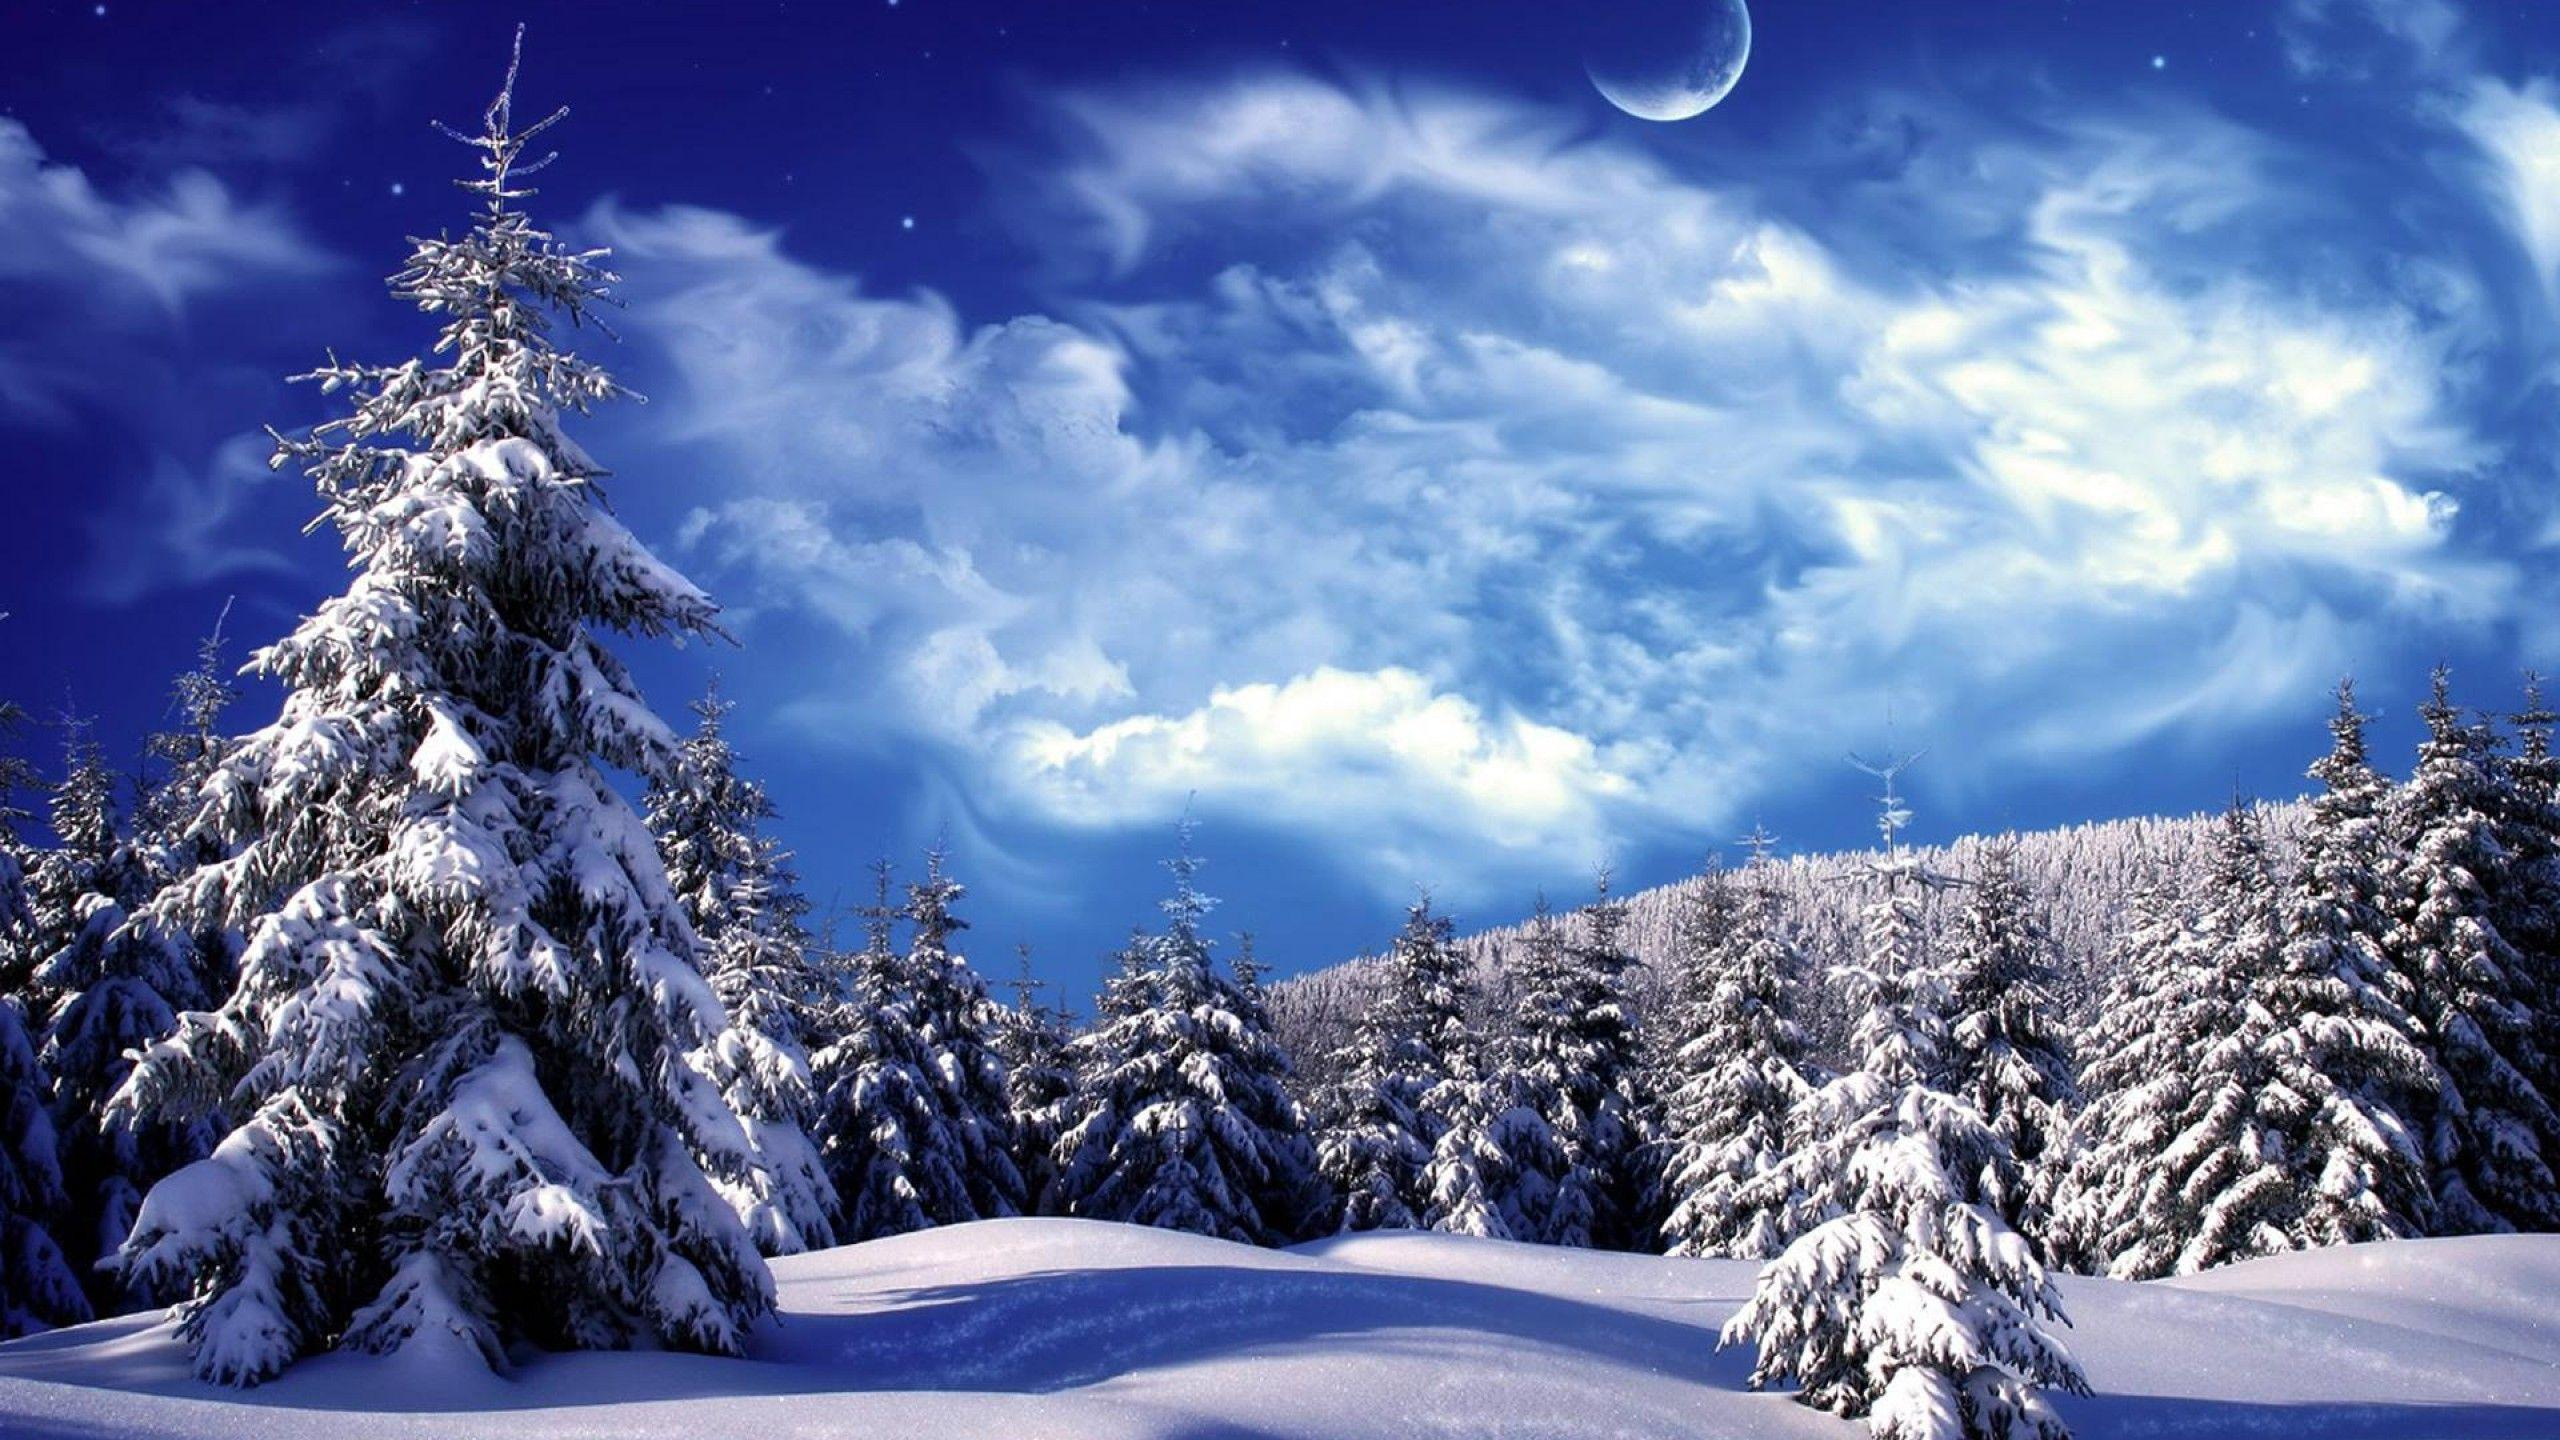 jcfriendcom winter desktop wallpapers - photo #10